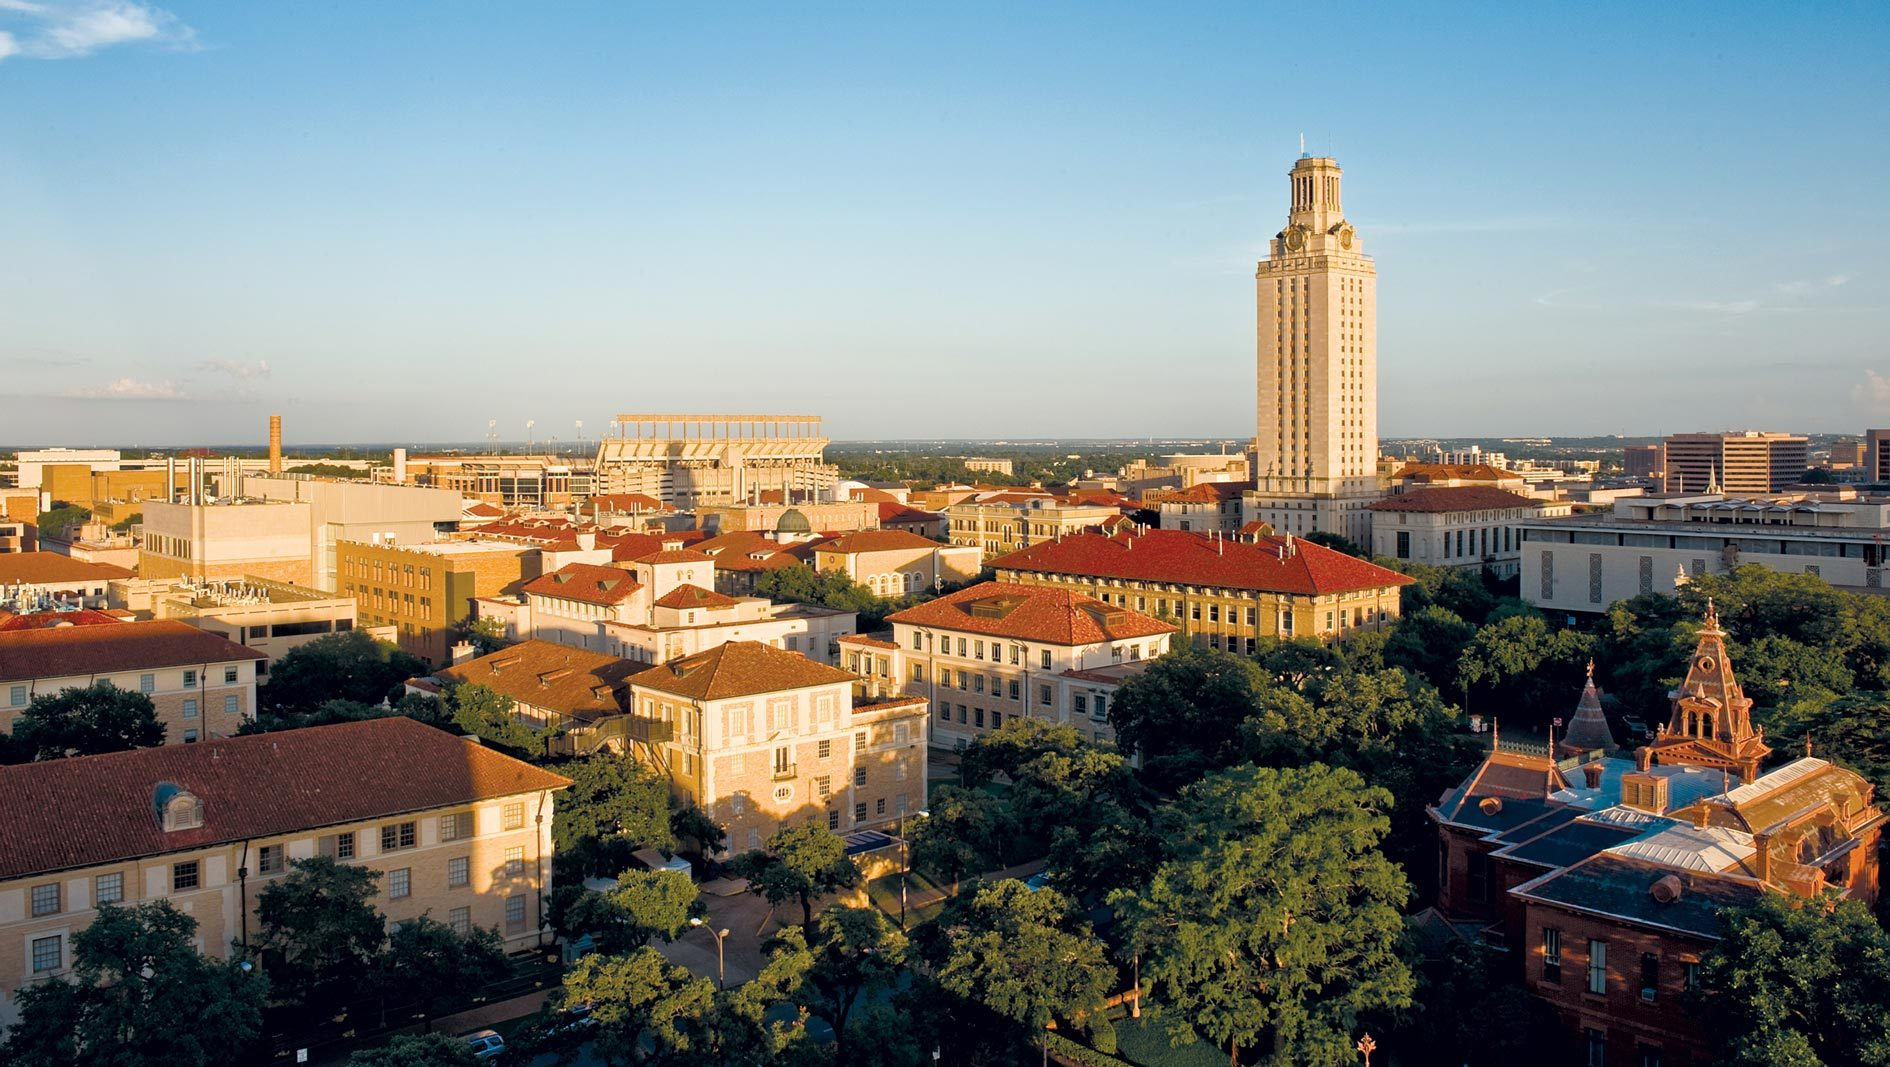 The University of Texas at Austin's campus Tower.